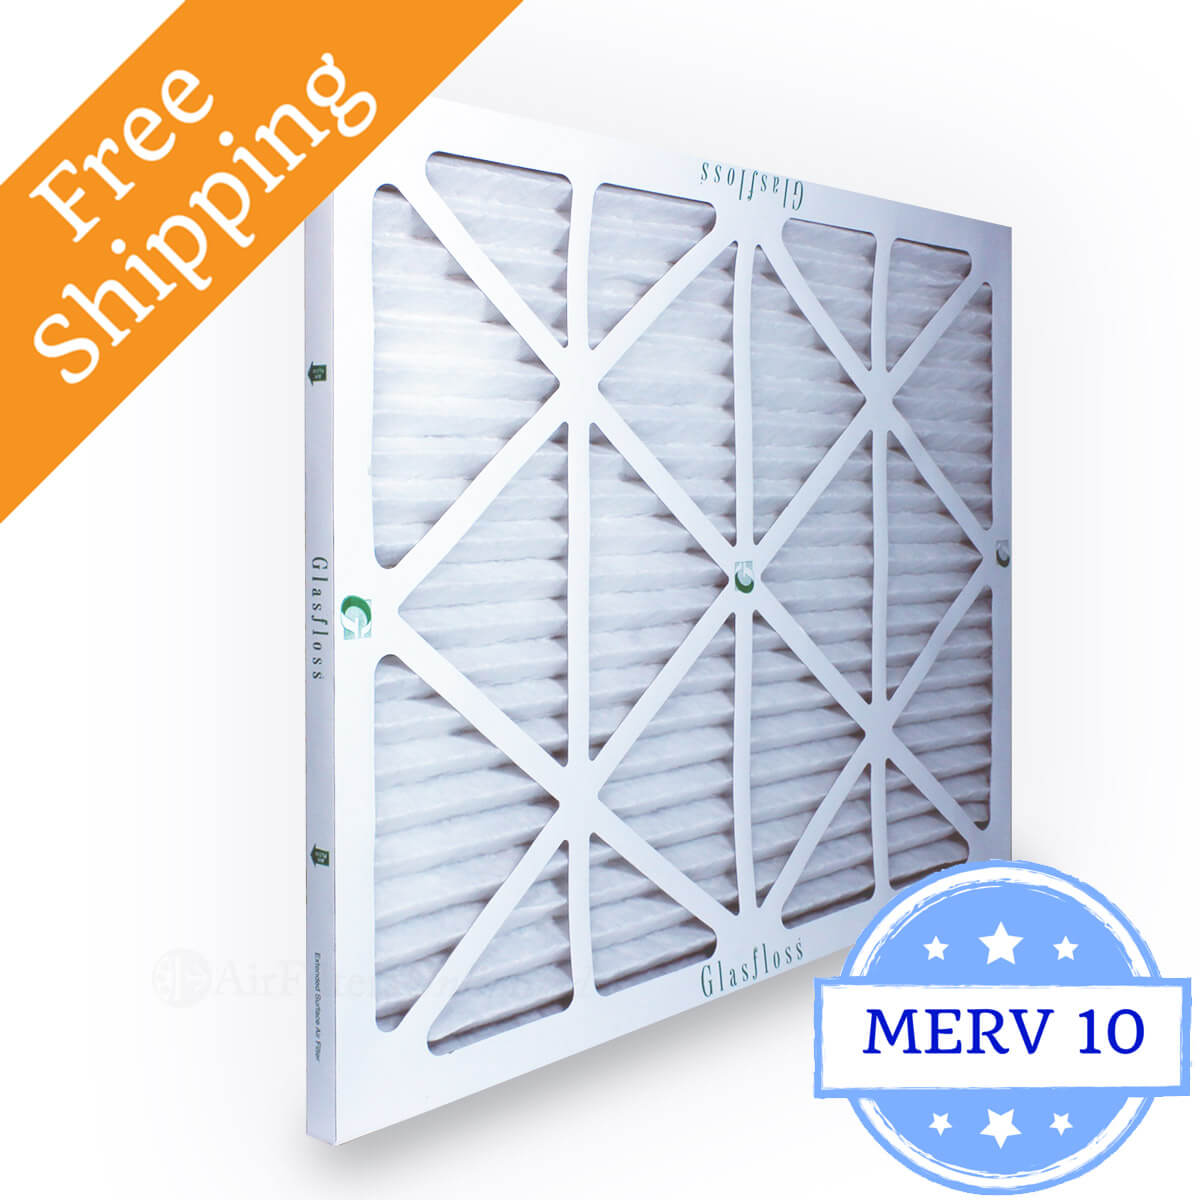 Glasfloss 16x30x1 Air Filter ZL Series